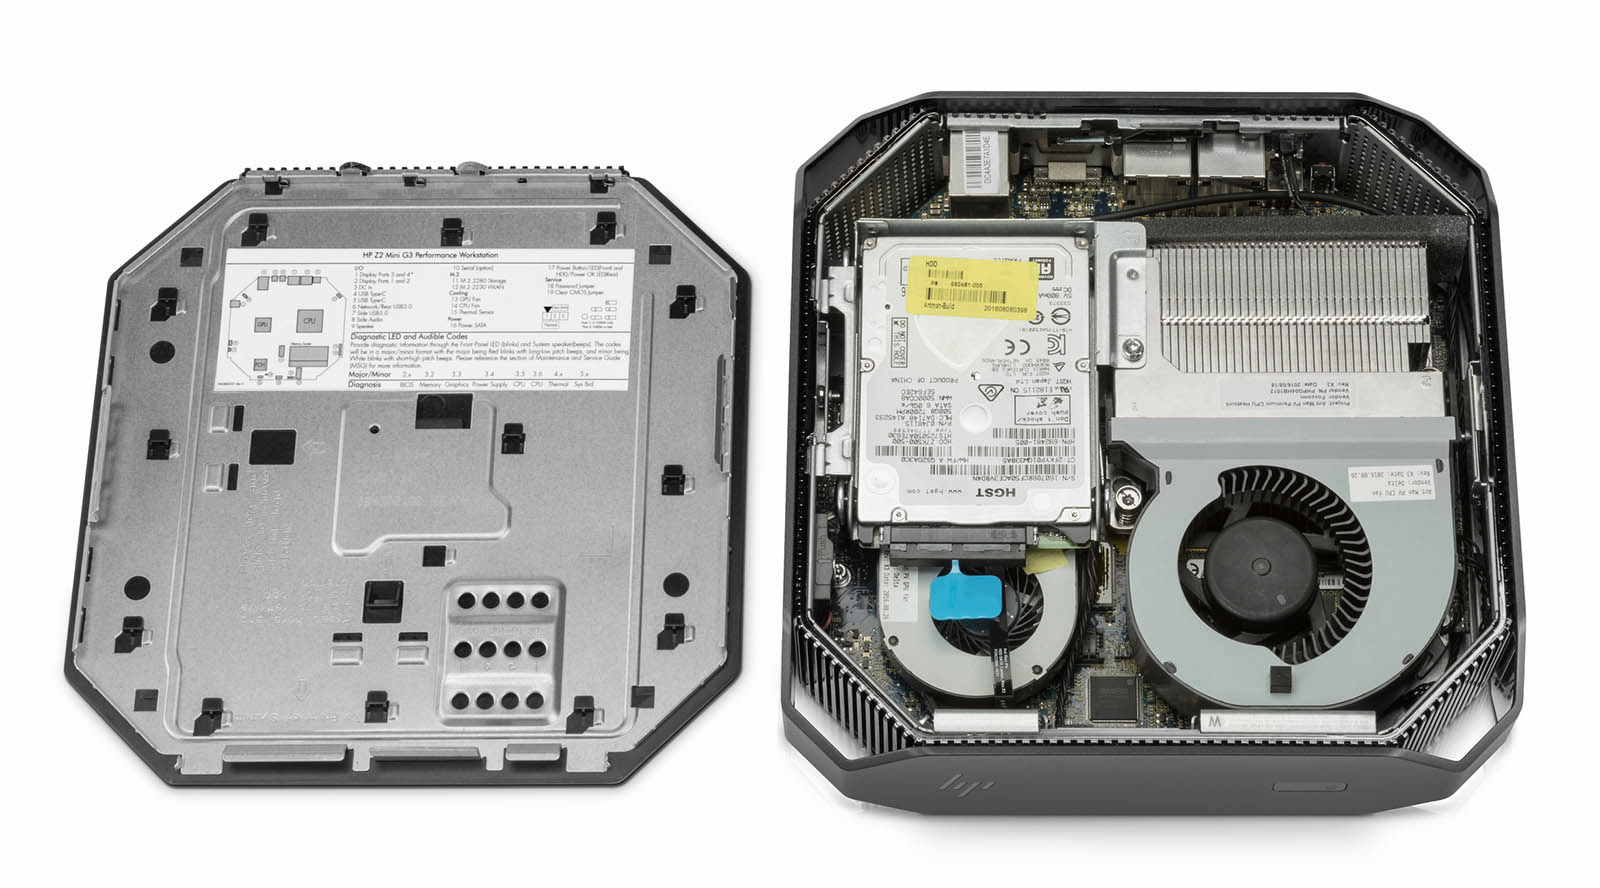 HP's tiny Xeon-powered PC puts the Mac Mini to shame